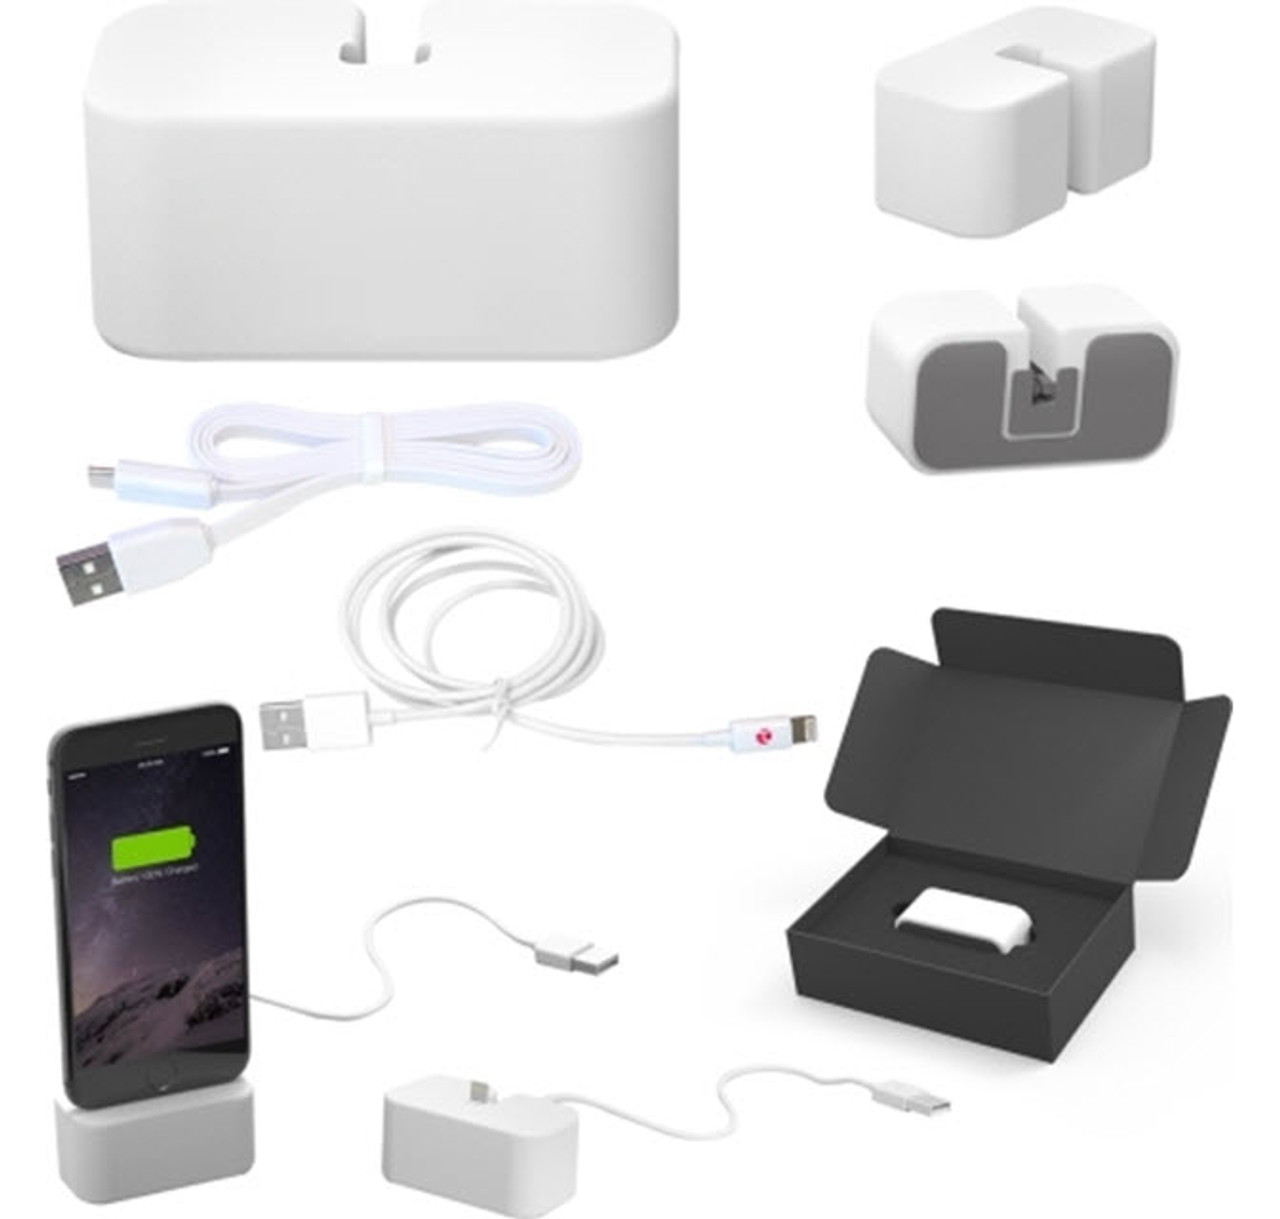 Cell Phone Charging Stand-RAFFLE PRIZE